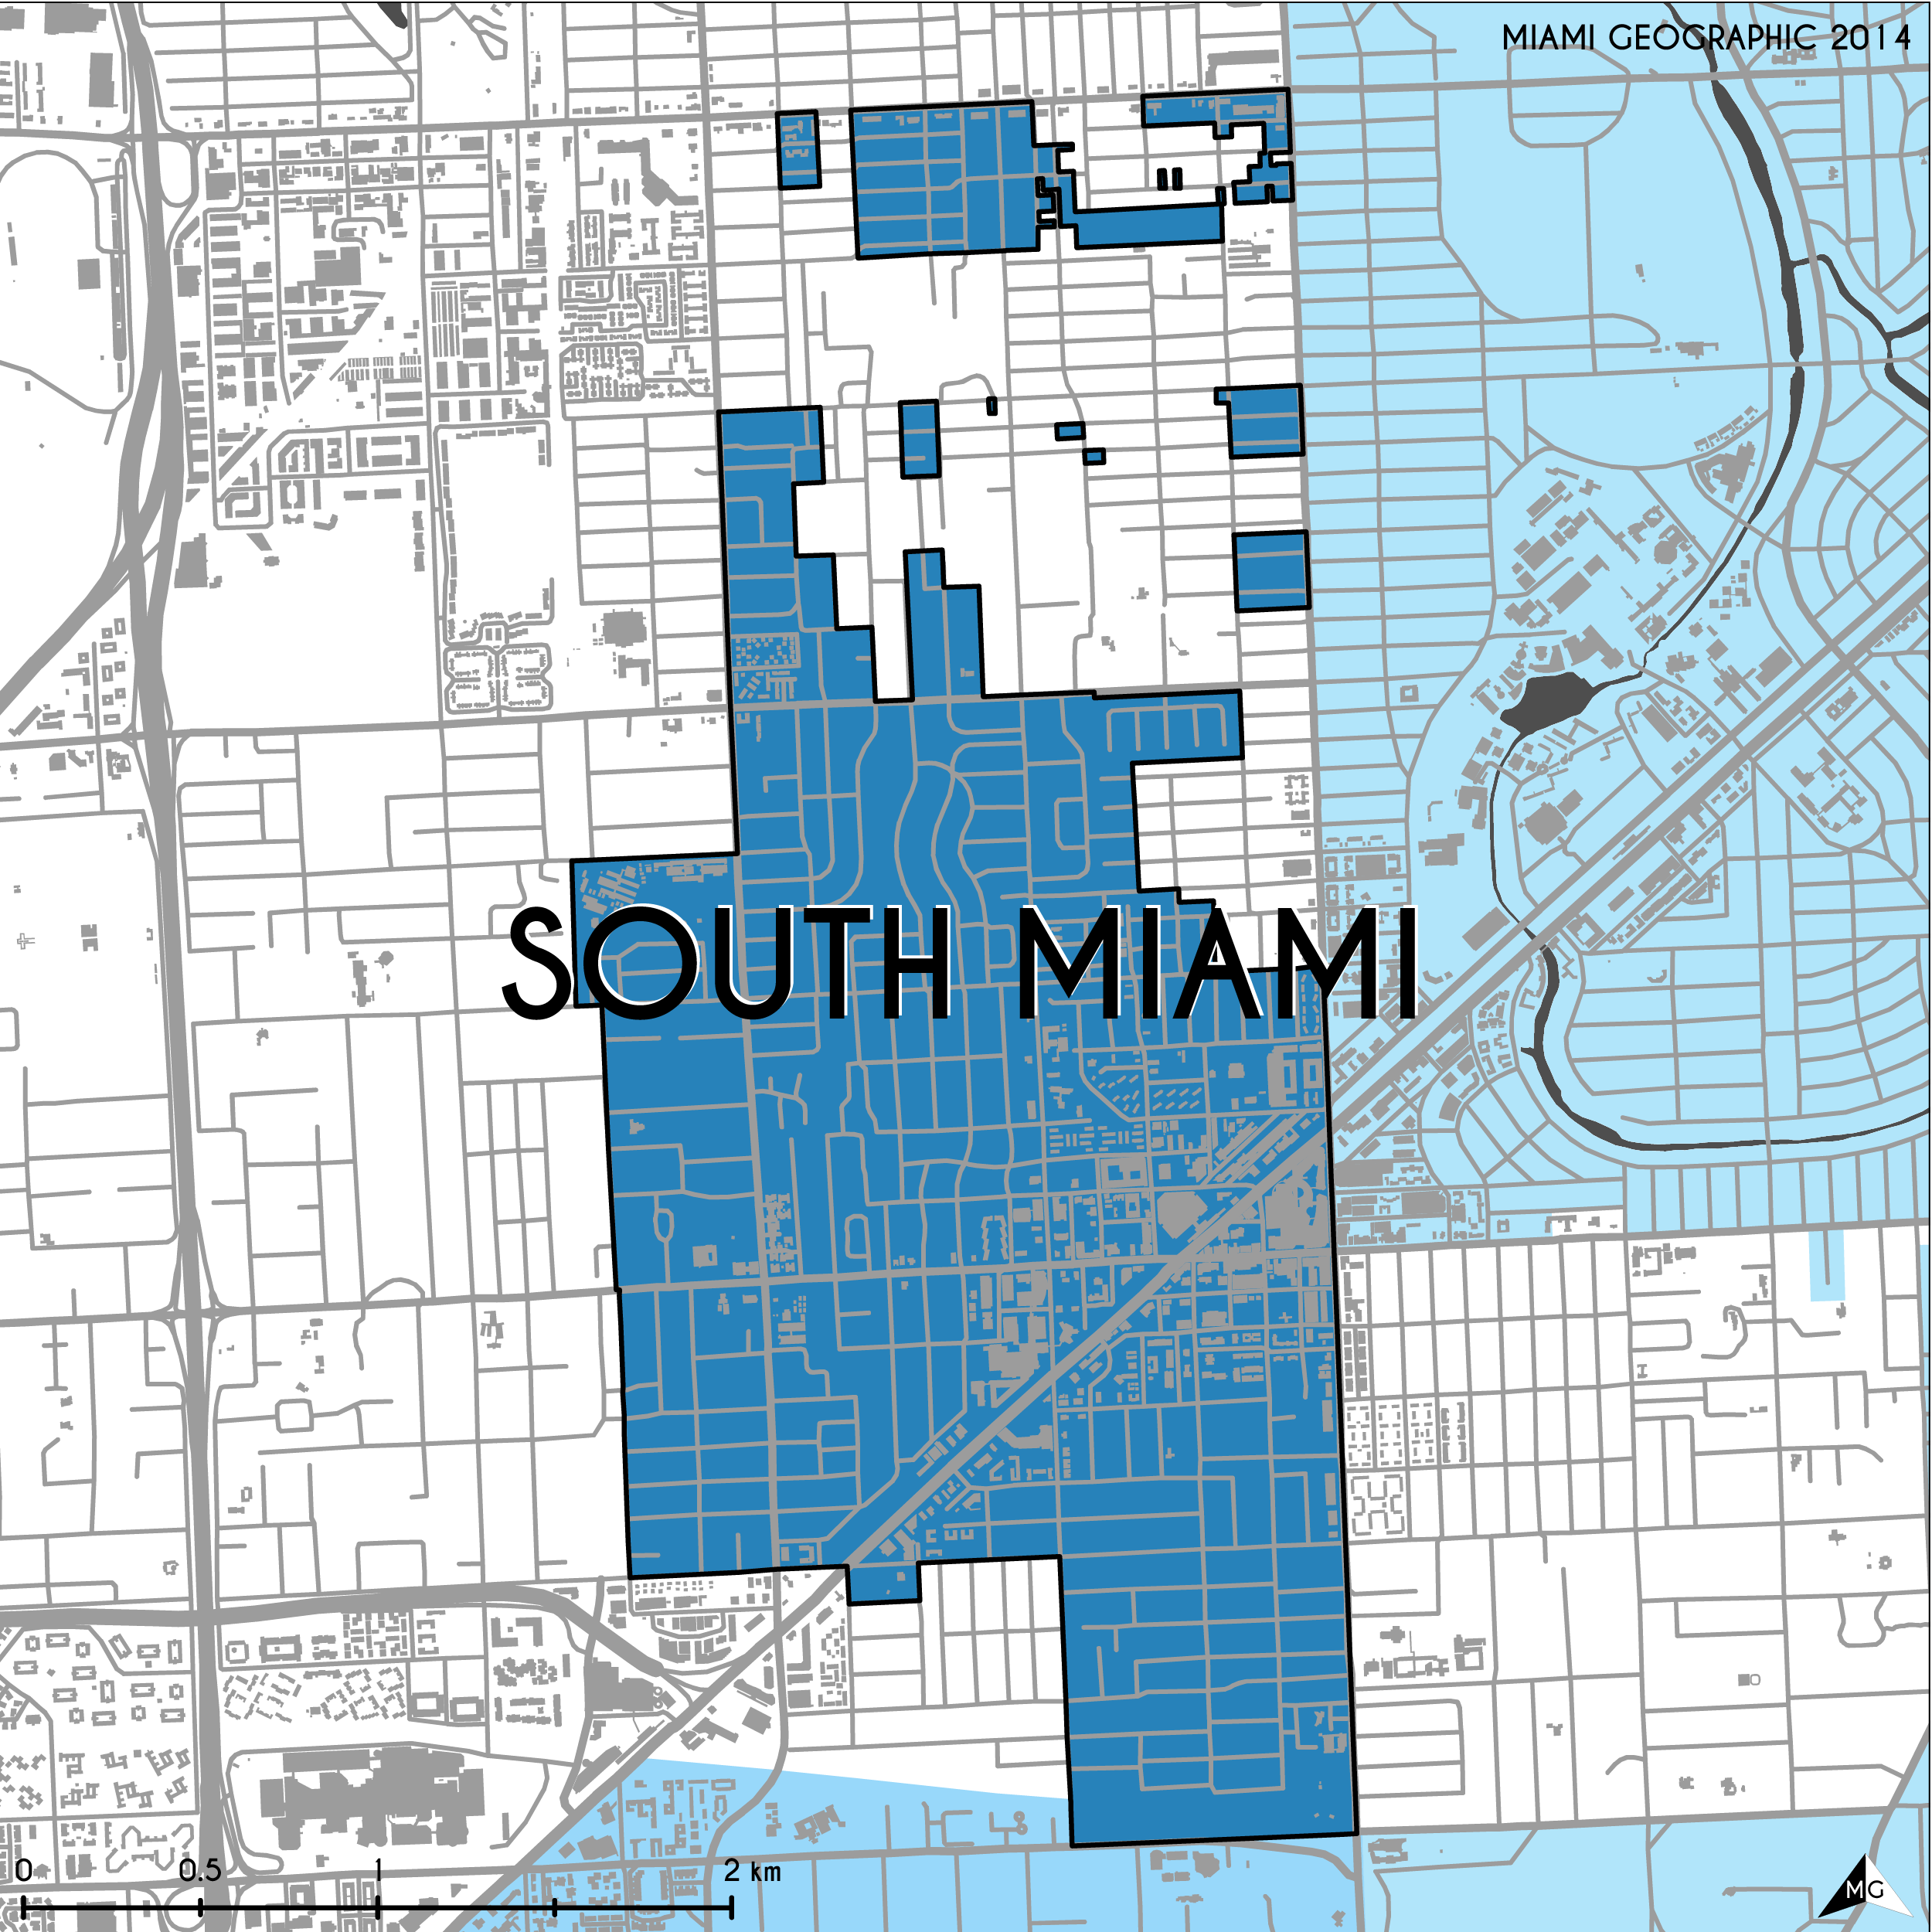 maps: municipalities of miami-dade county | miami geographic